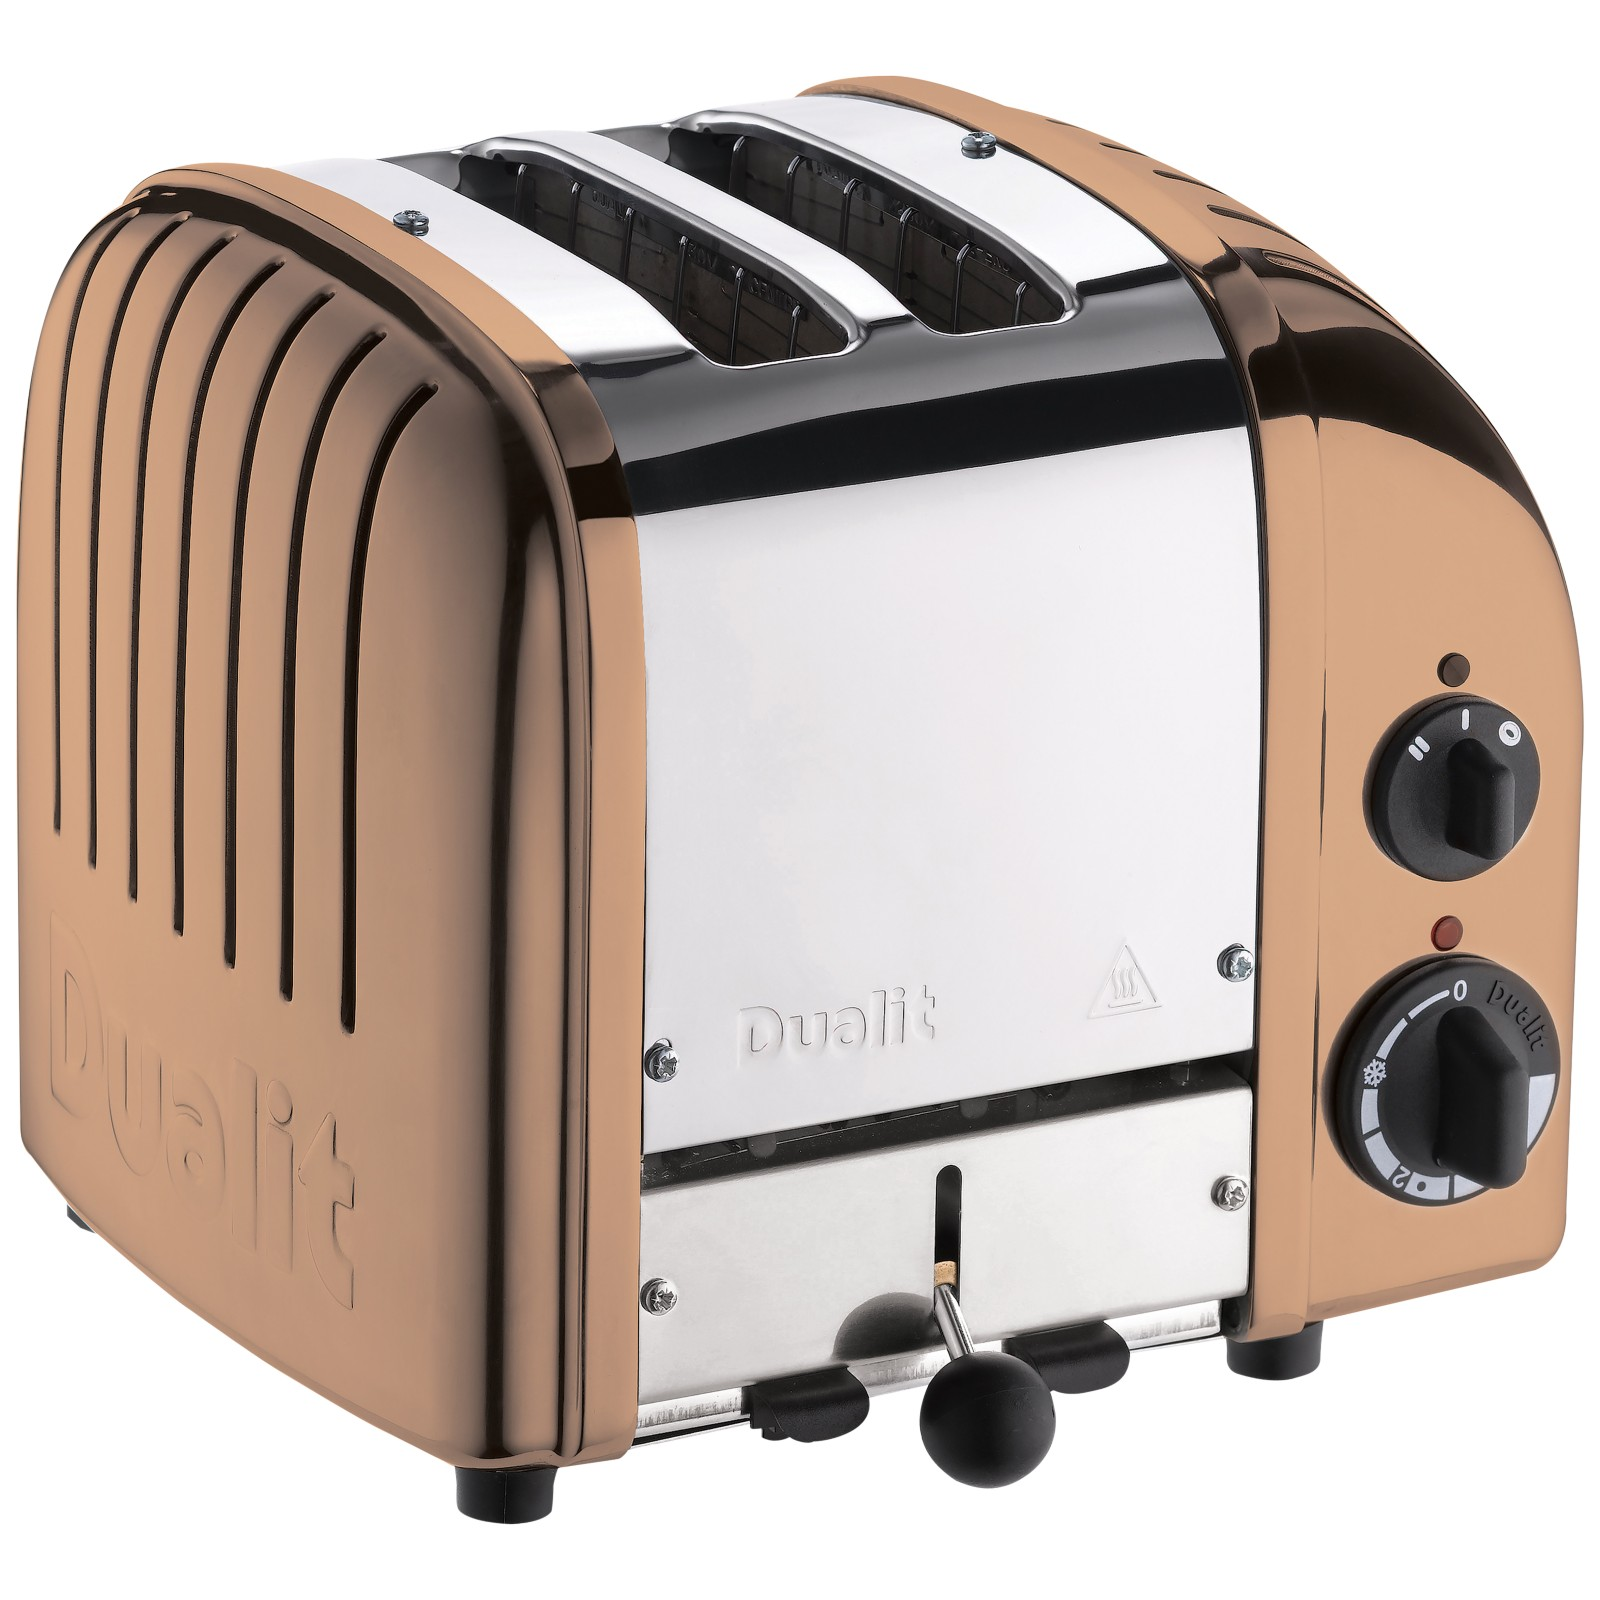 Dualit NewGen 2-Slice Toaster Copper